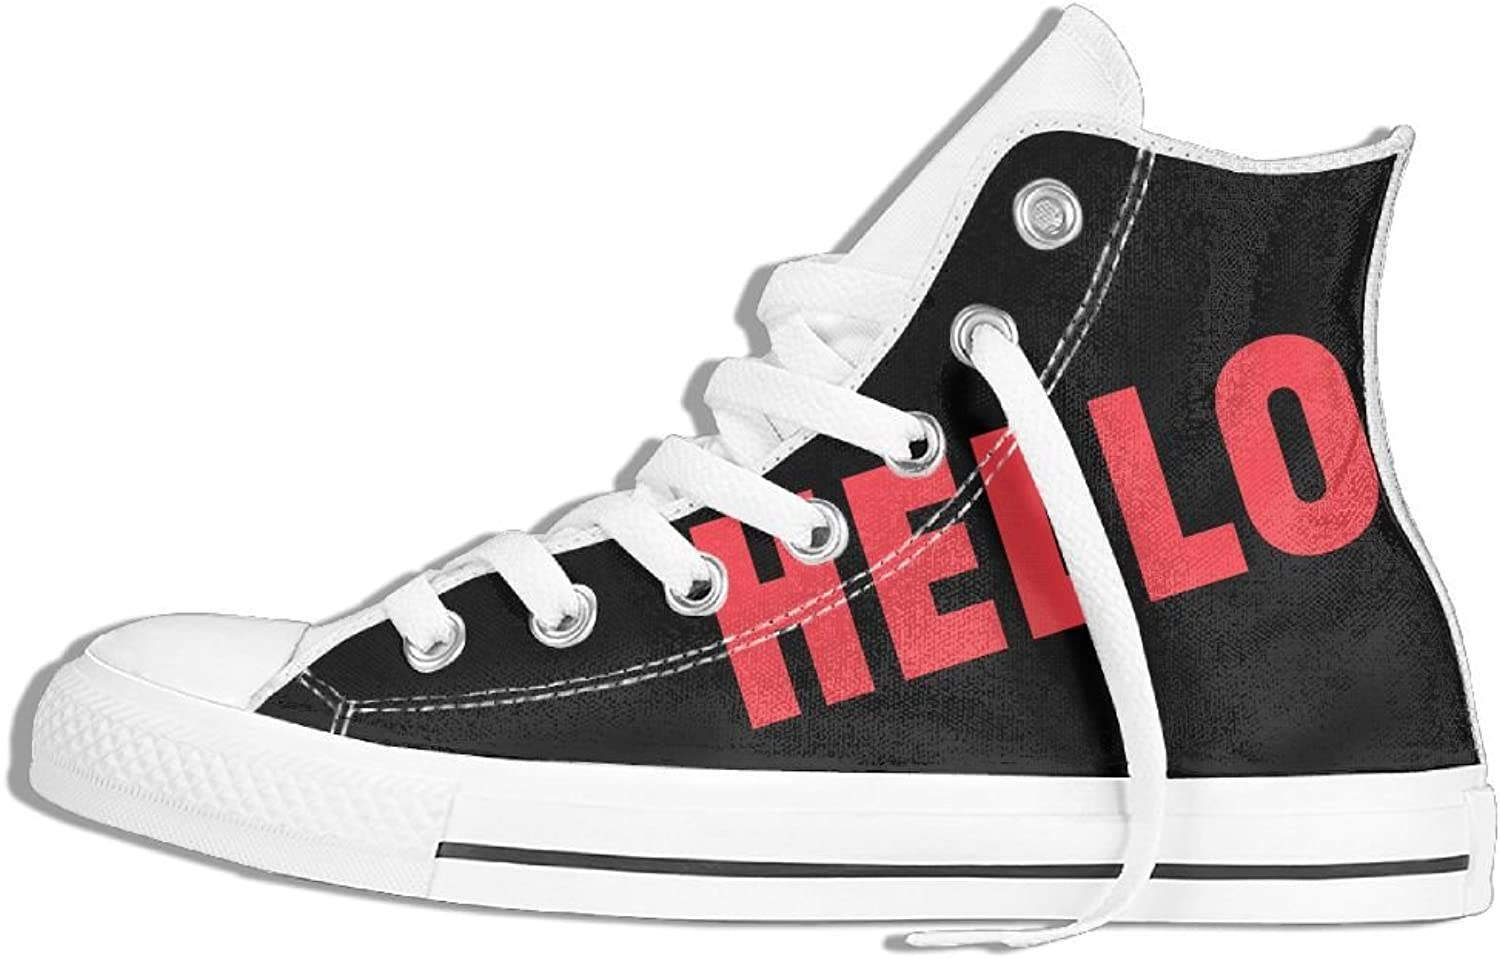 Unisex High-Top Canvas Sneakers Hello Flat Anti Skid Running Trainers shoes